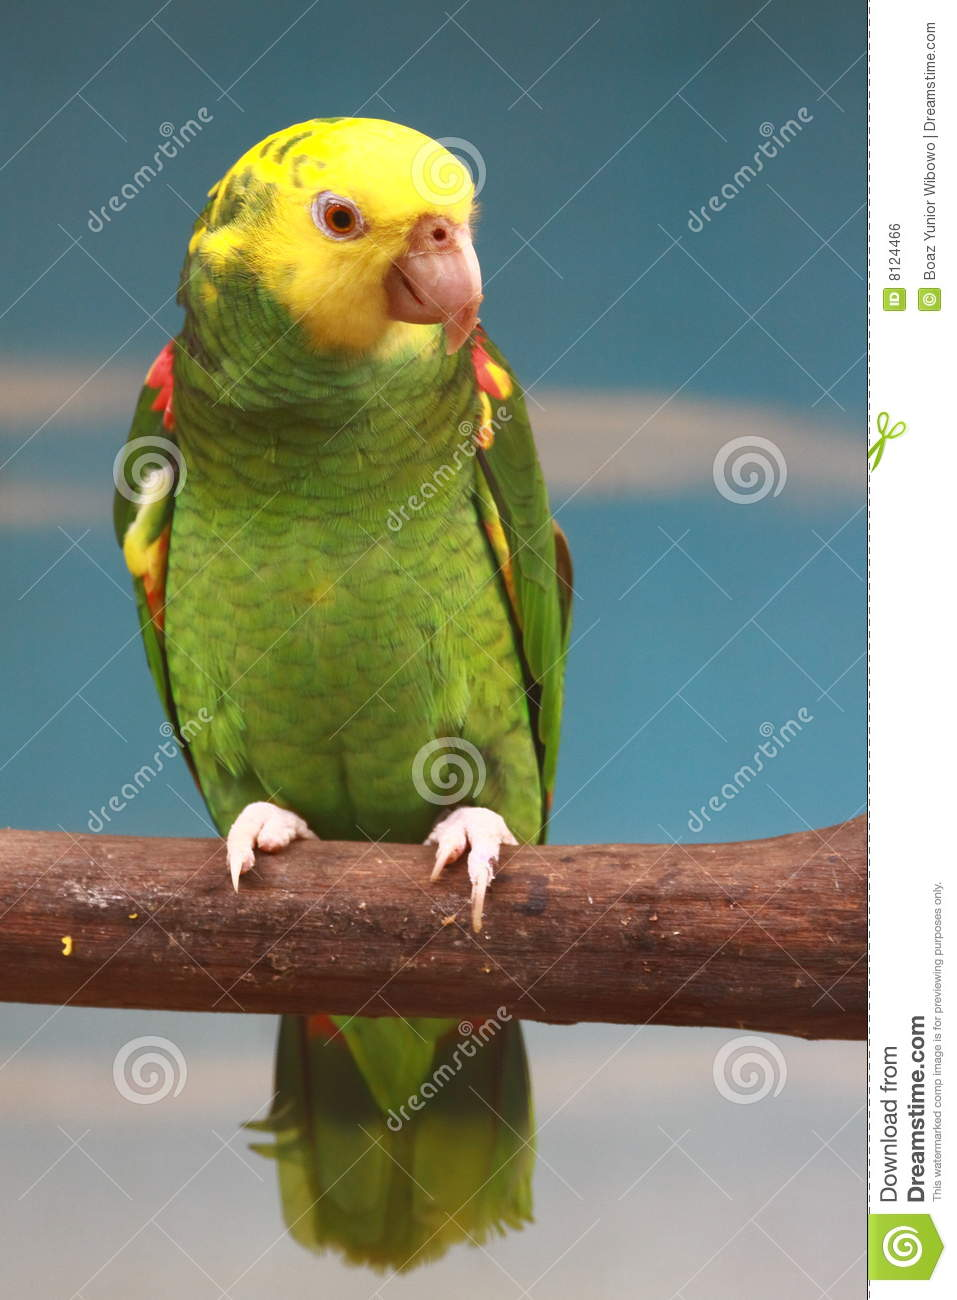 yellow green parrot stock photo image of cute avian 8124466